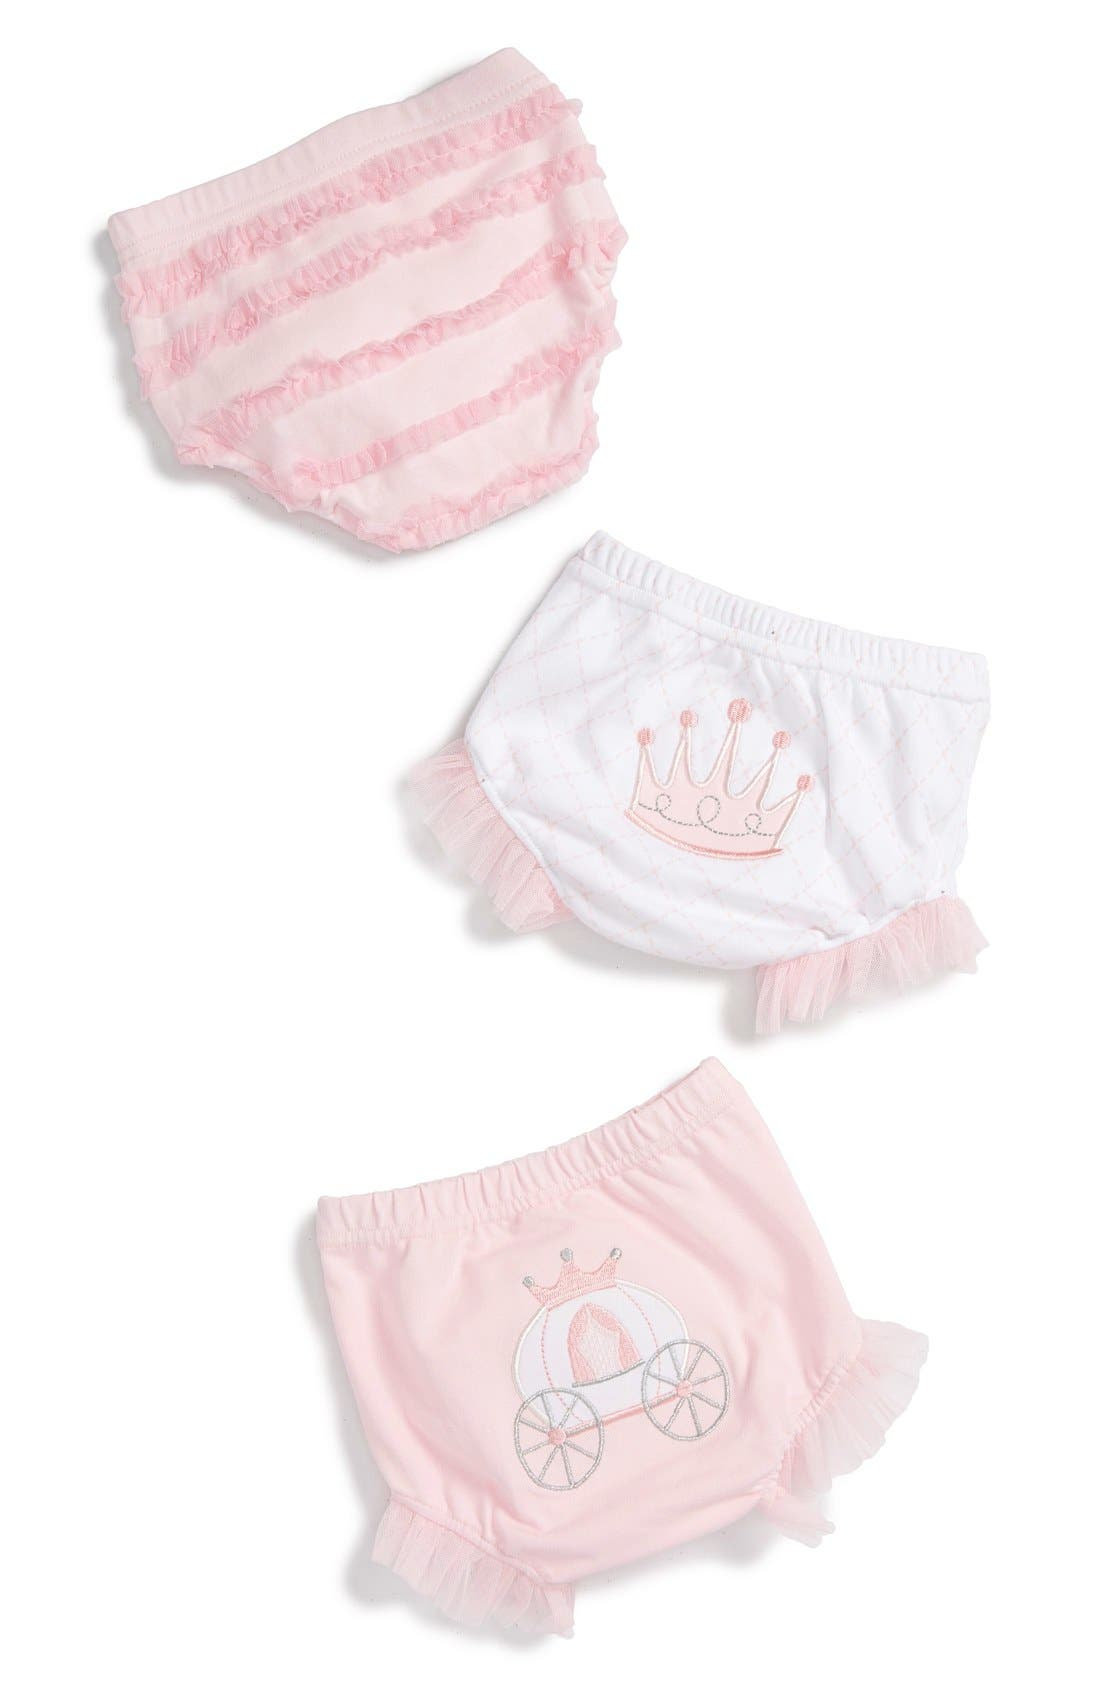 Alternate Image 1 Selected - Baby Aspen 'Her Royal Hineys' Bloomers (3-Pack) (Baby Girls)